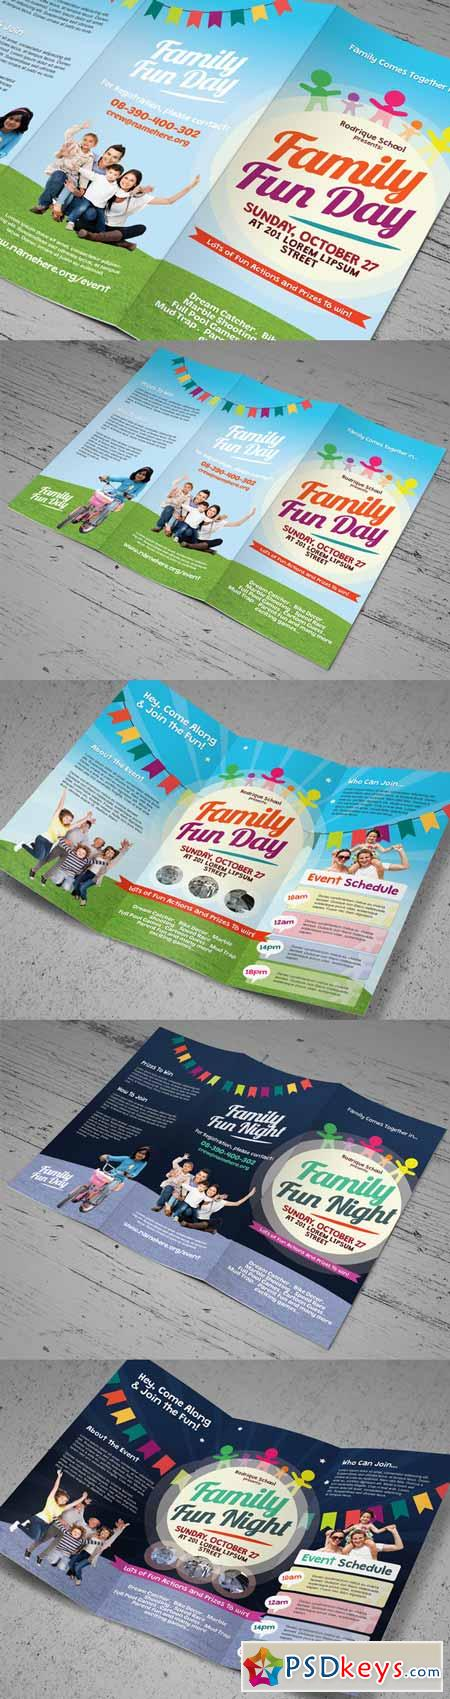 Family Fun Day Trifold Brochures 266828